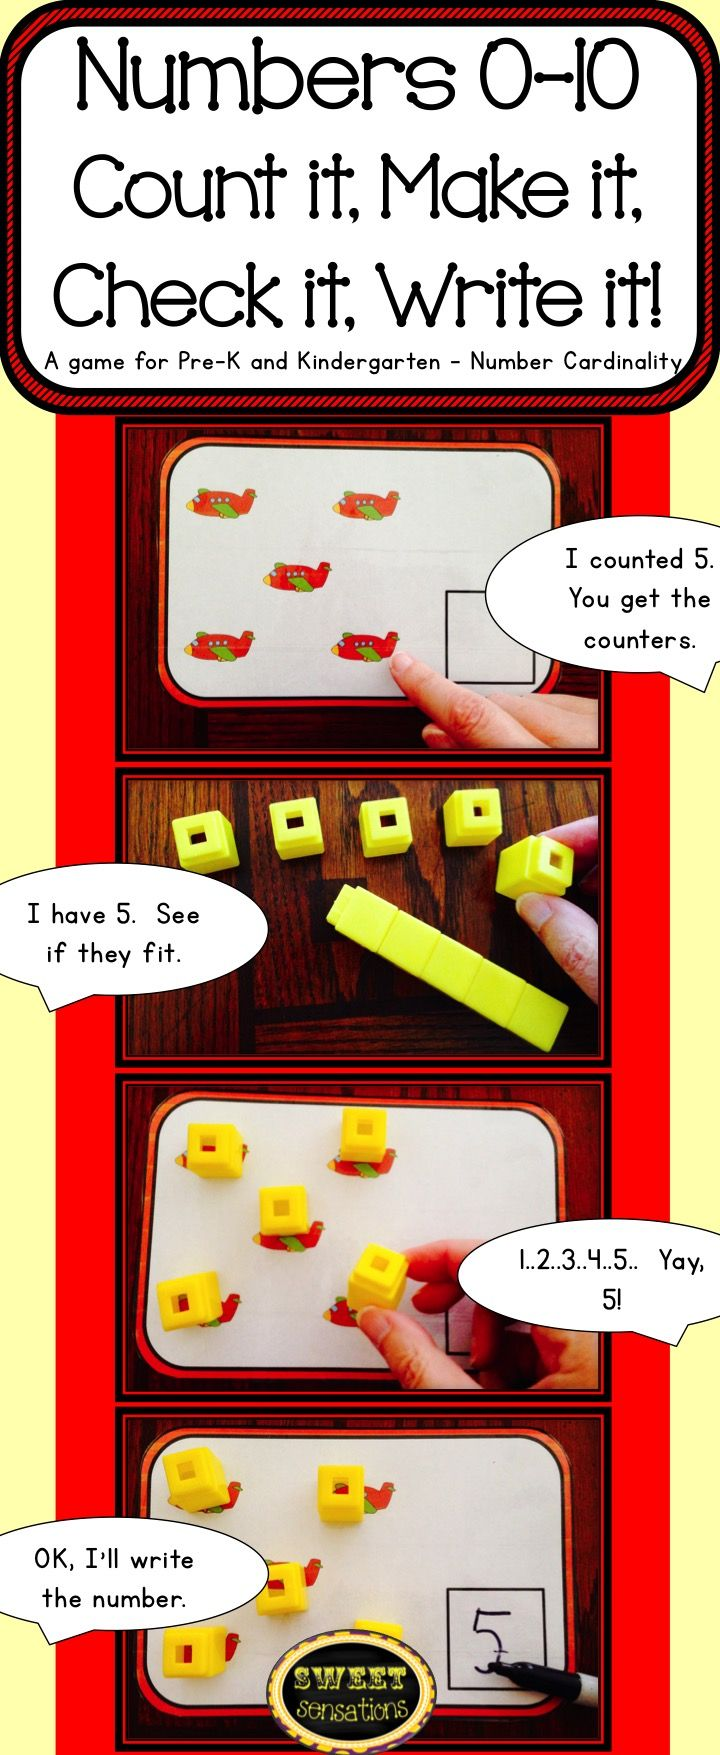 Numbers 0-10 Counting Game Math Station For Pre-k And Kindergarten